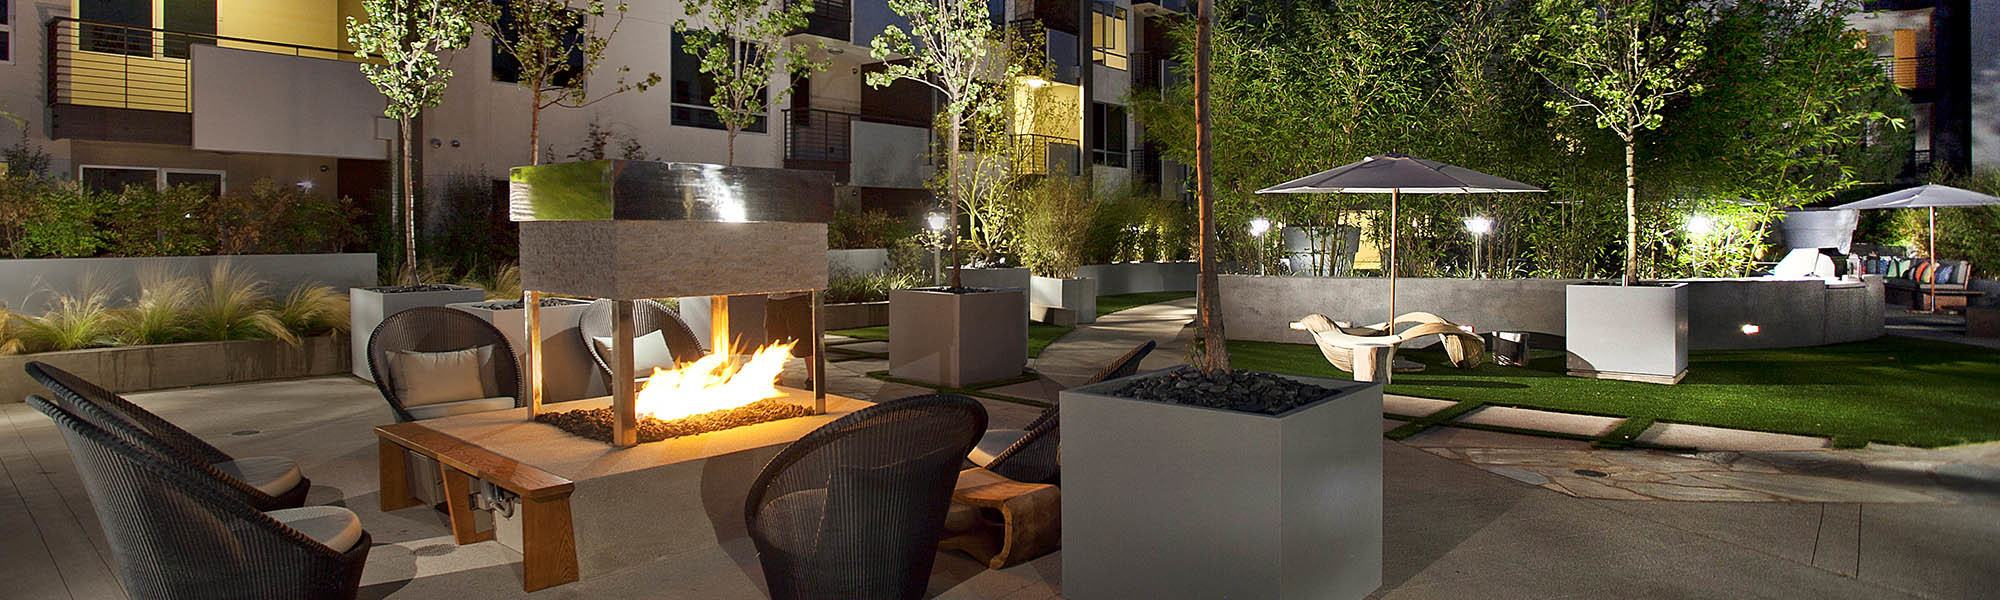 Learn about our neighborhood at Brio Apartment Homes in Glendale, CA on our website